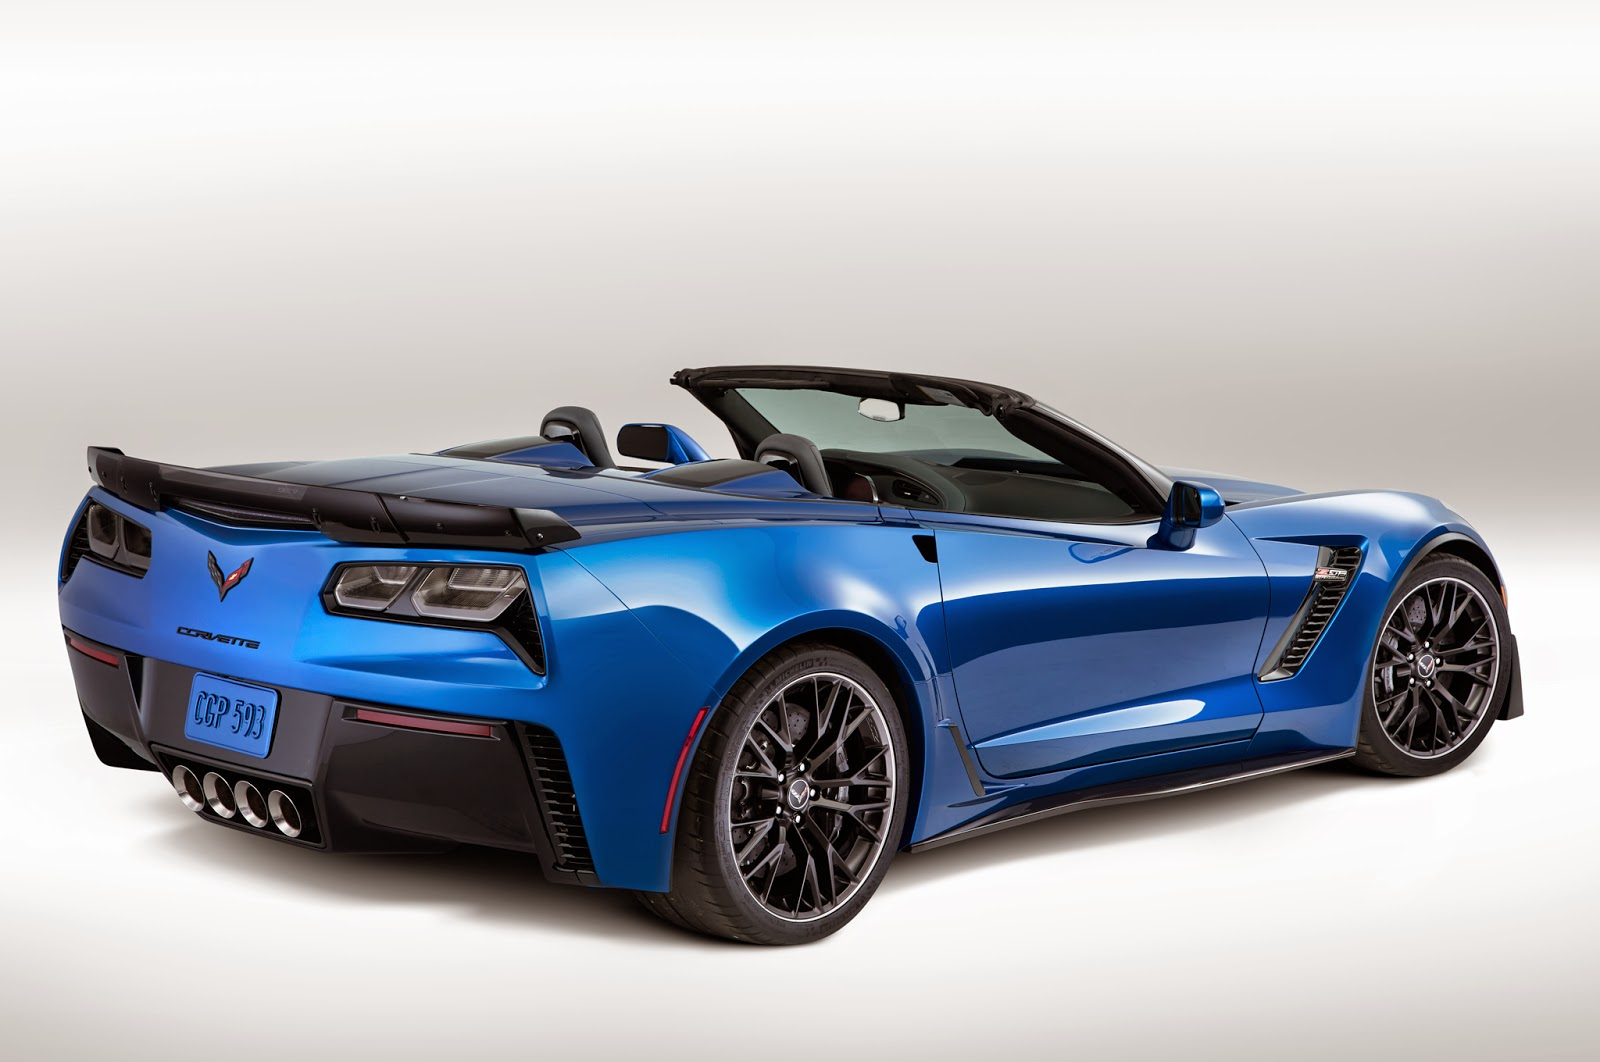 Convertible 2015 Chevy Corvette Z06 Debut